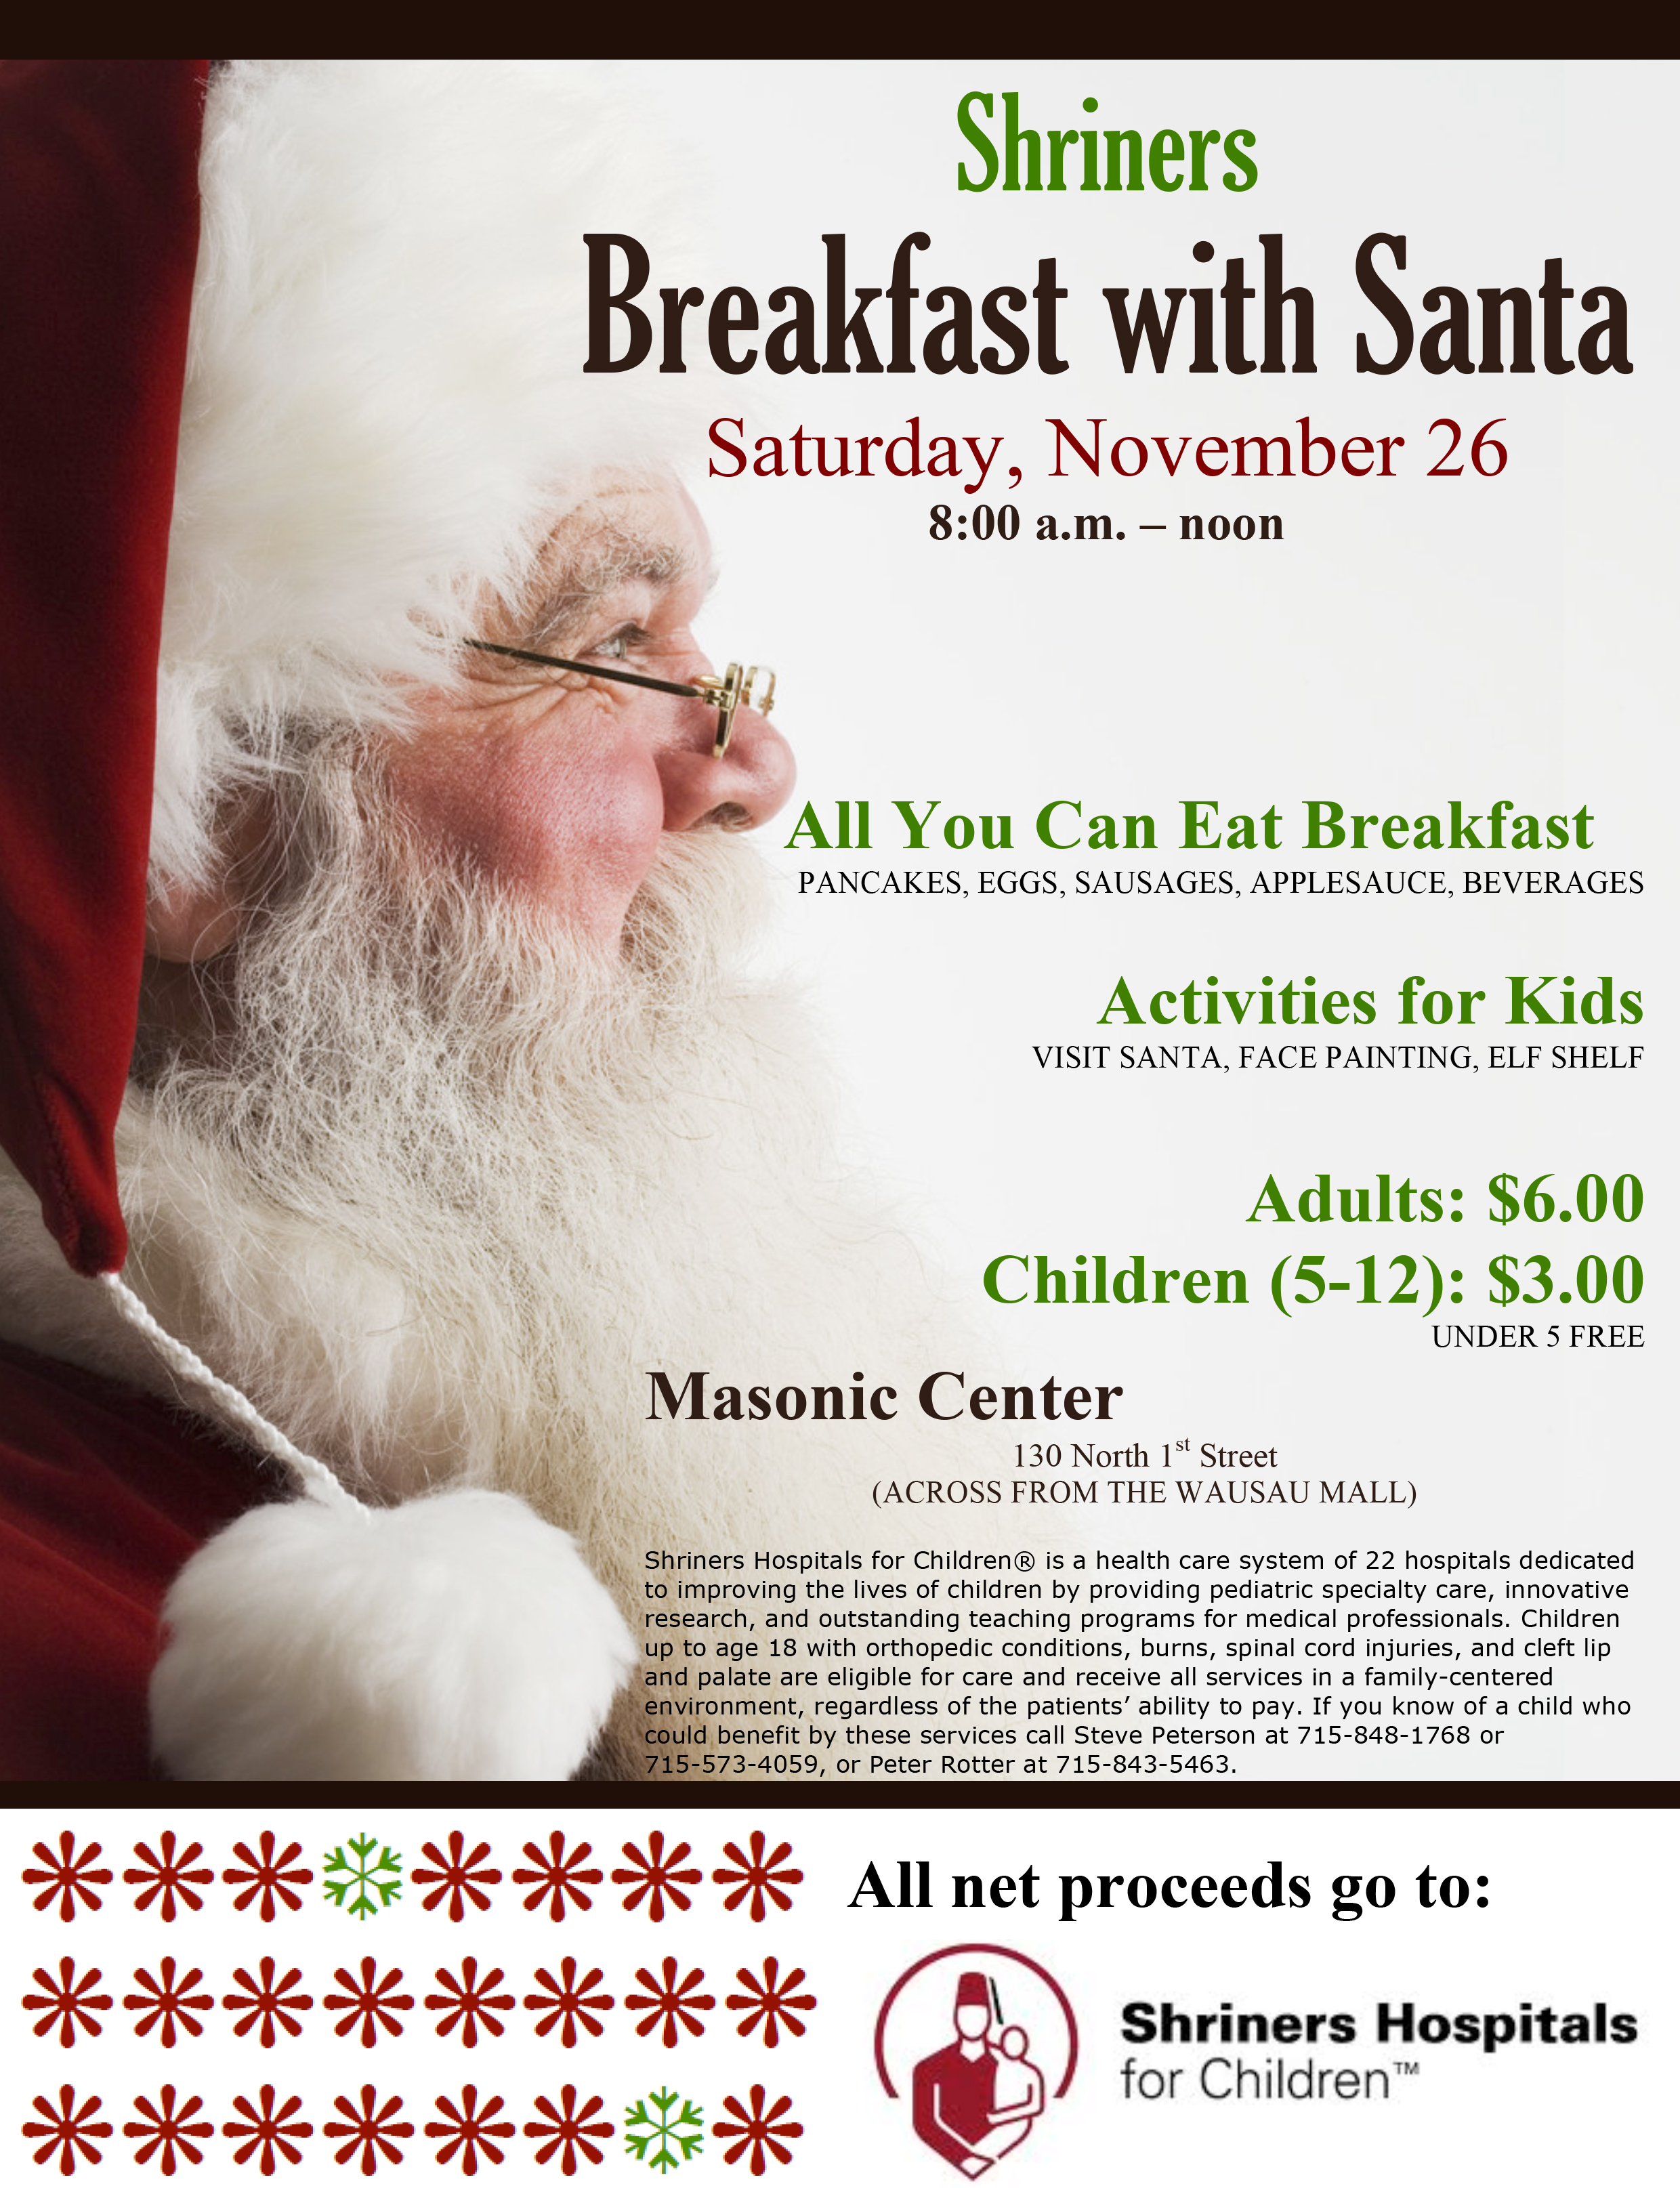 Microsoft Word - Breakfast with Santa Poster 2016.doc